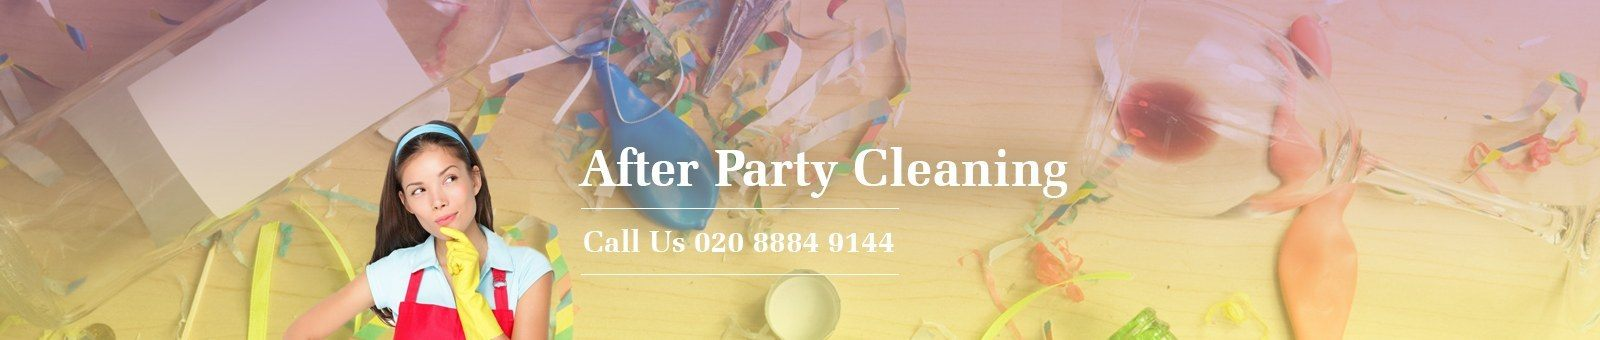 After Party Cleaning Slide